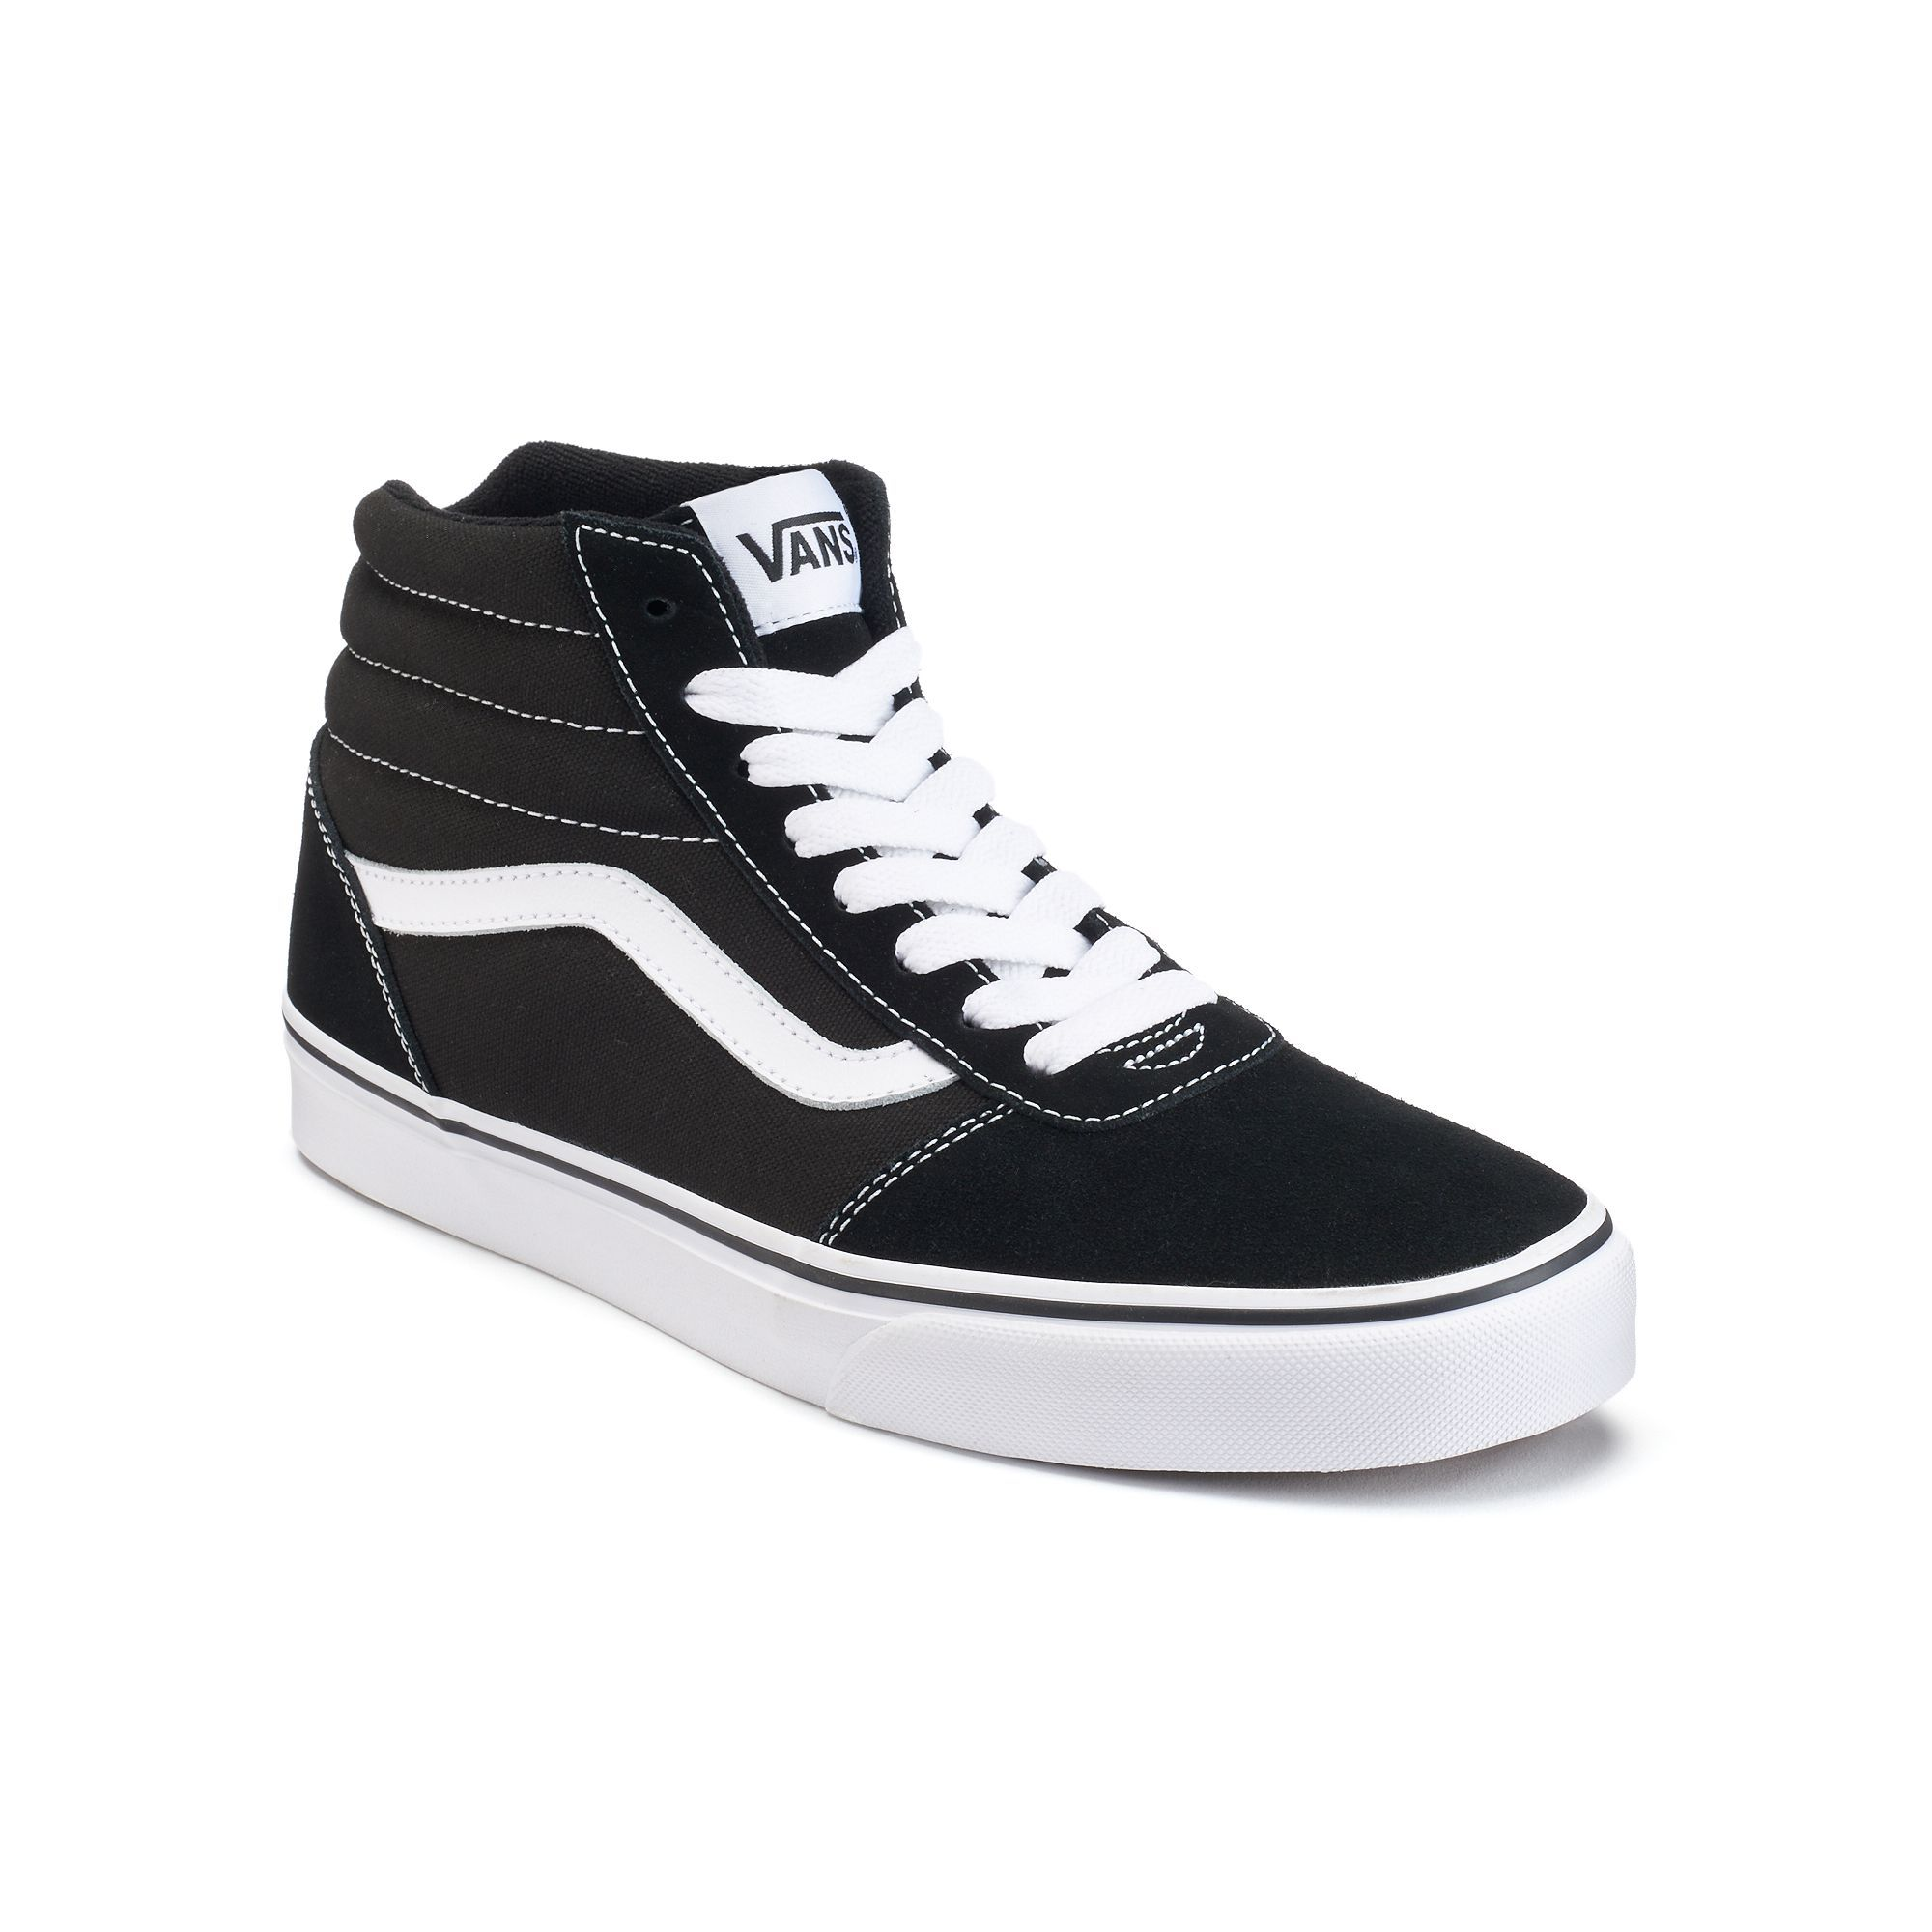 b44032049 Vans Ward Hi Men's Suede Skate Shoes | Products | Suede skate shoes ...